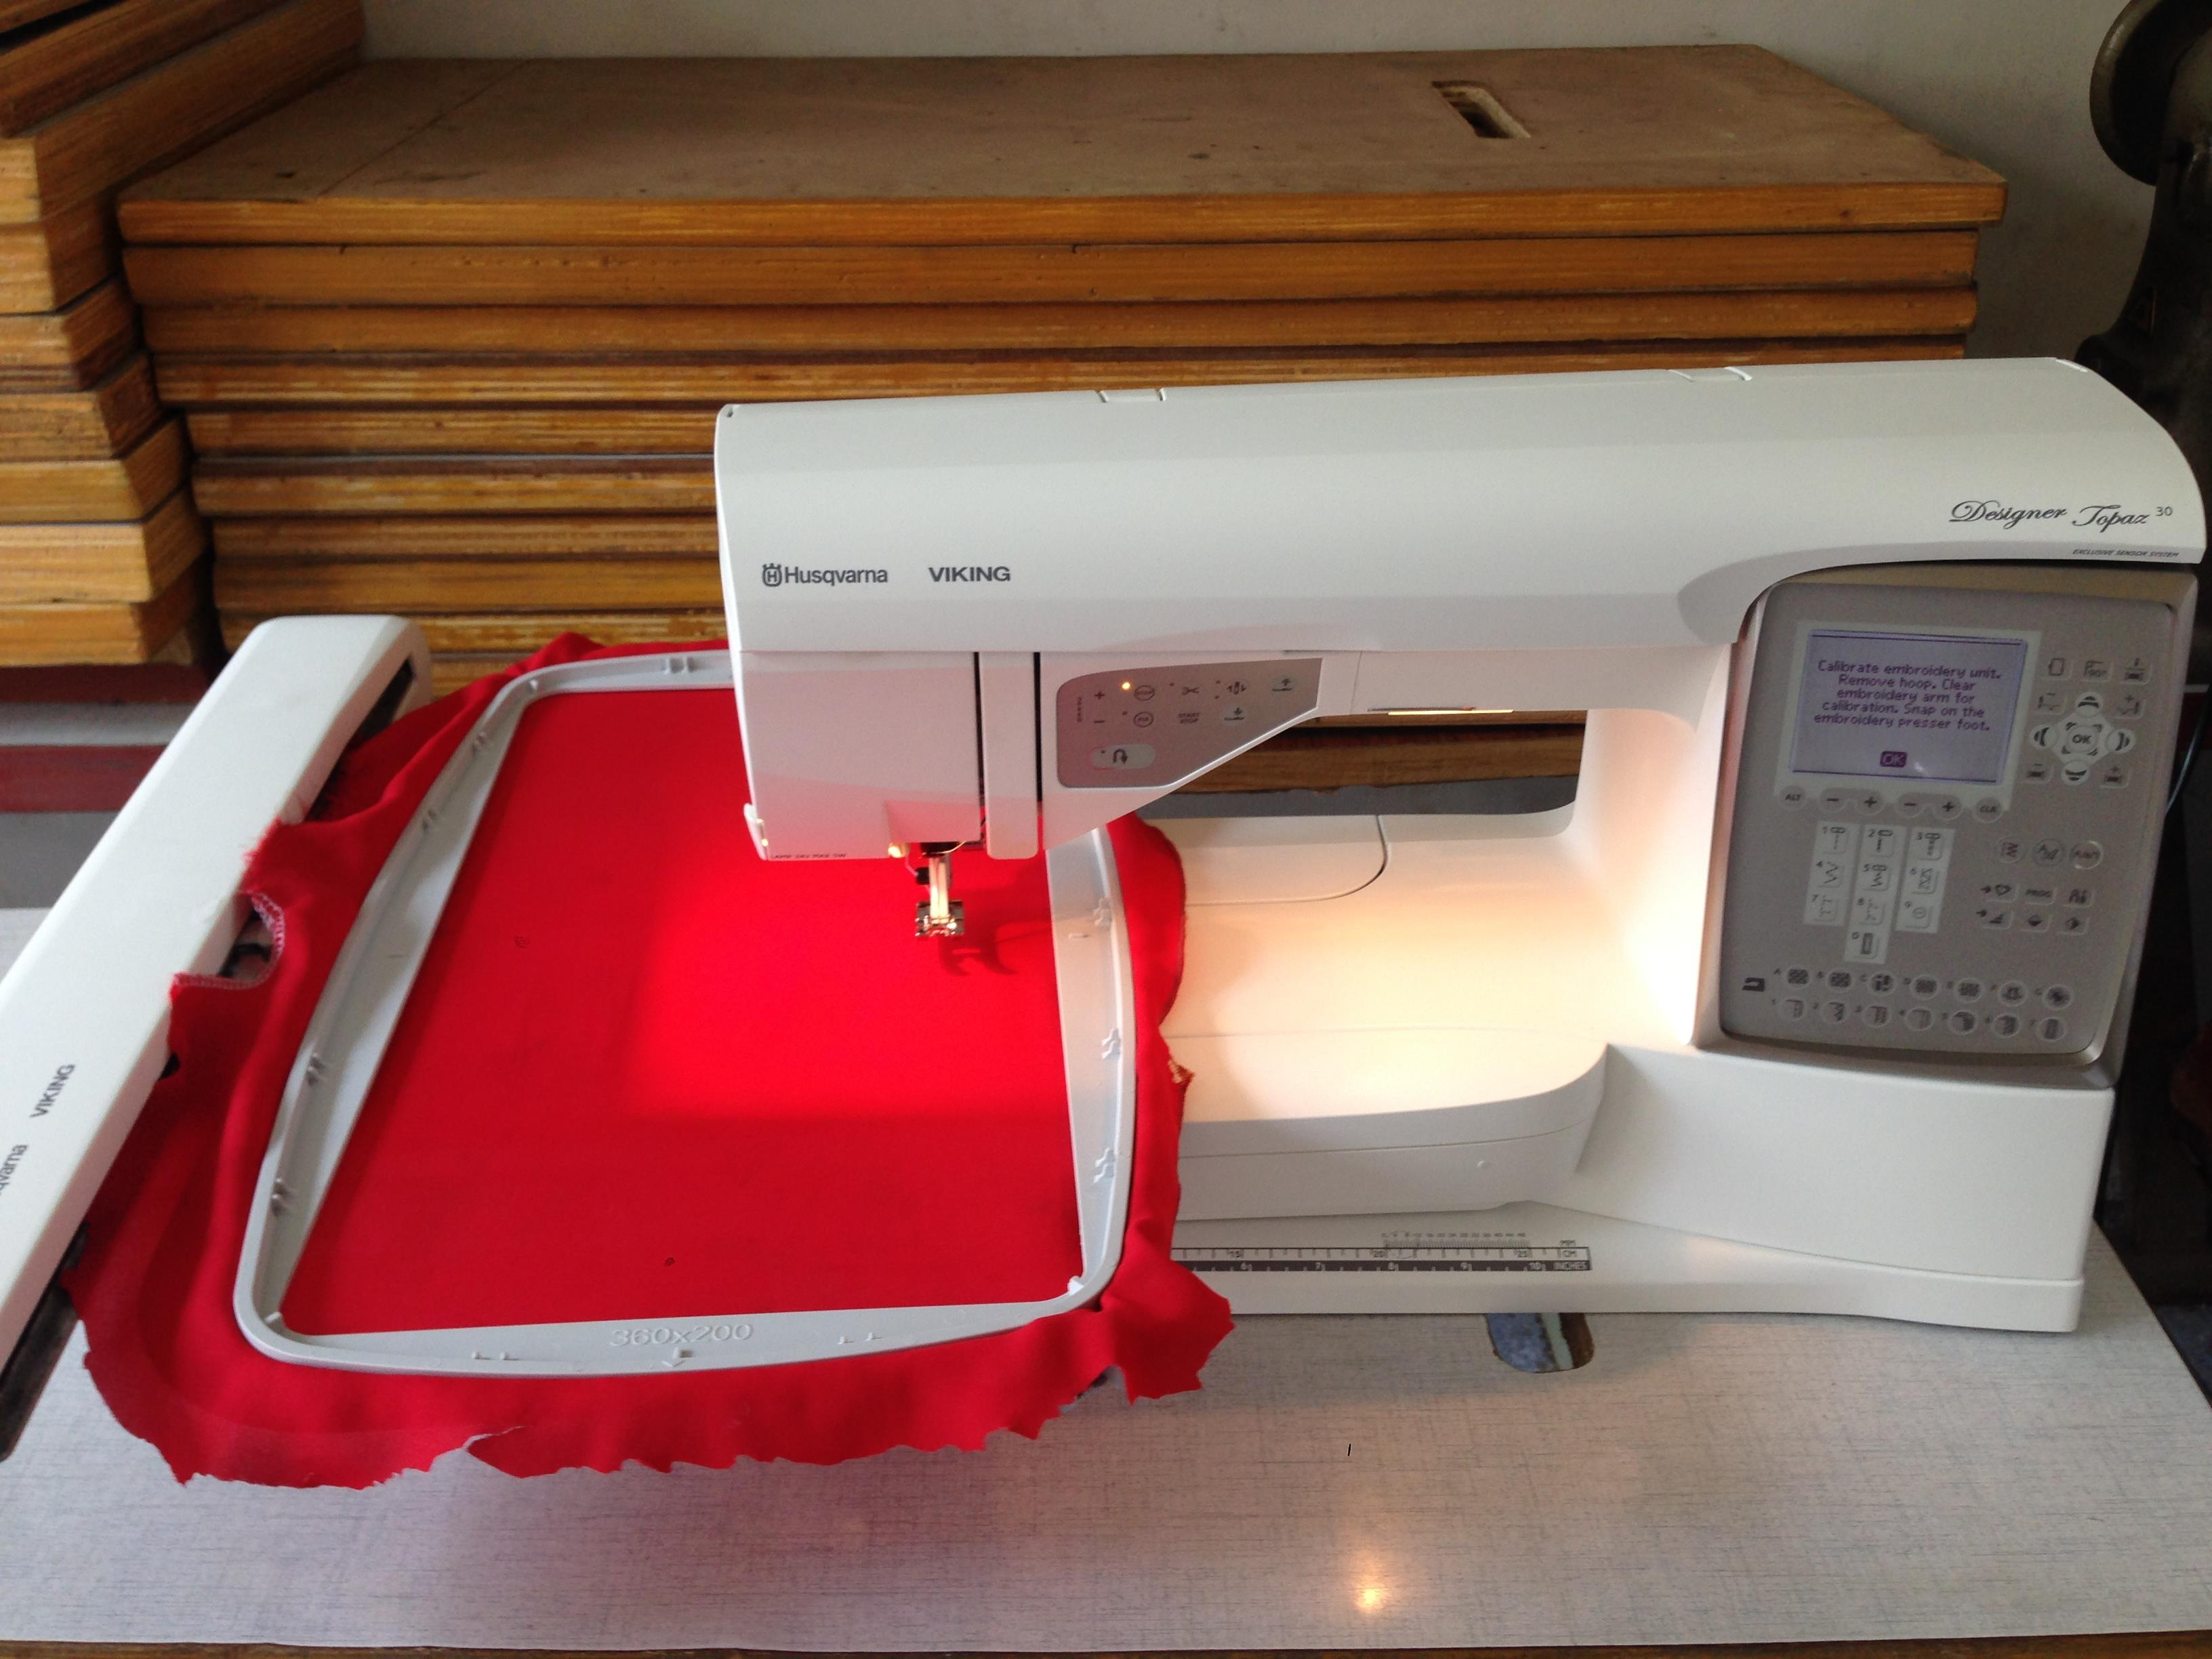 Sell Computer Embroidery Sewing Machine Husqvarna Viking Topaz Mesin Singer 1306 Xl 400 580 Brother Janome Elna Cny E900 Messina Disney D7500 From Indonesia By Toko